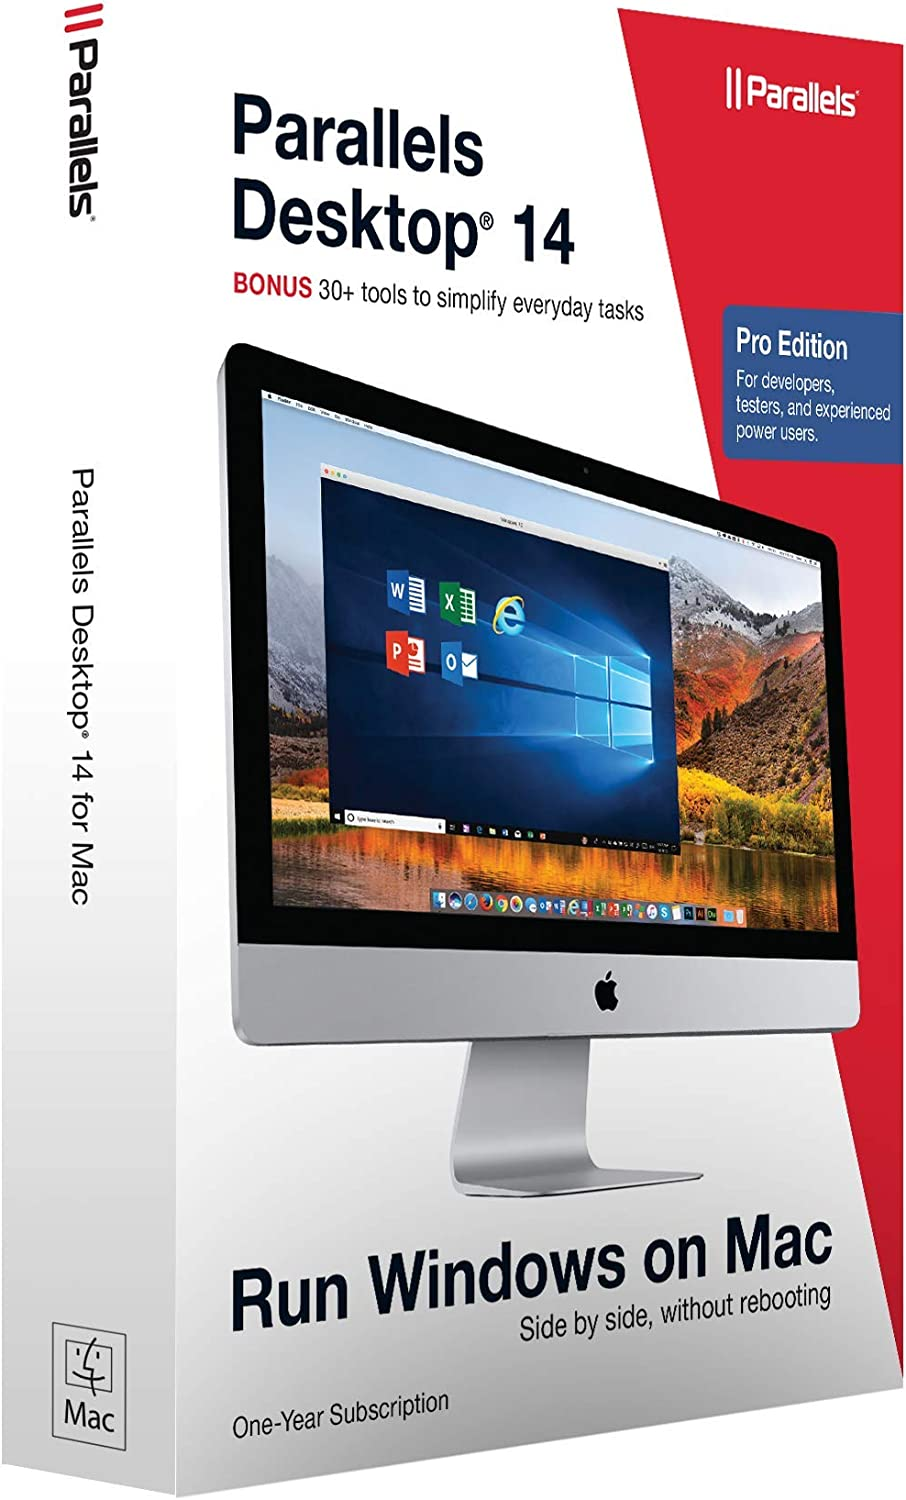 Parallels Software Parallels Desktop 14 Pro Edition